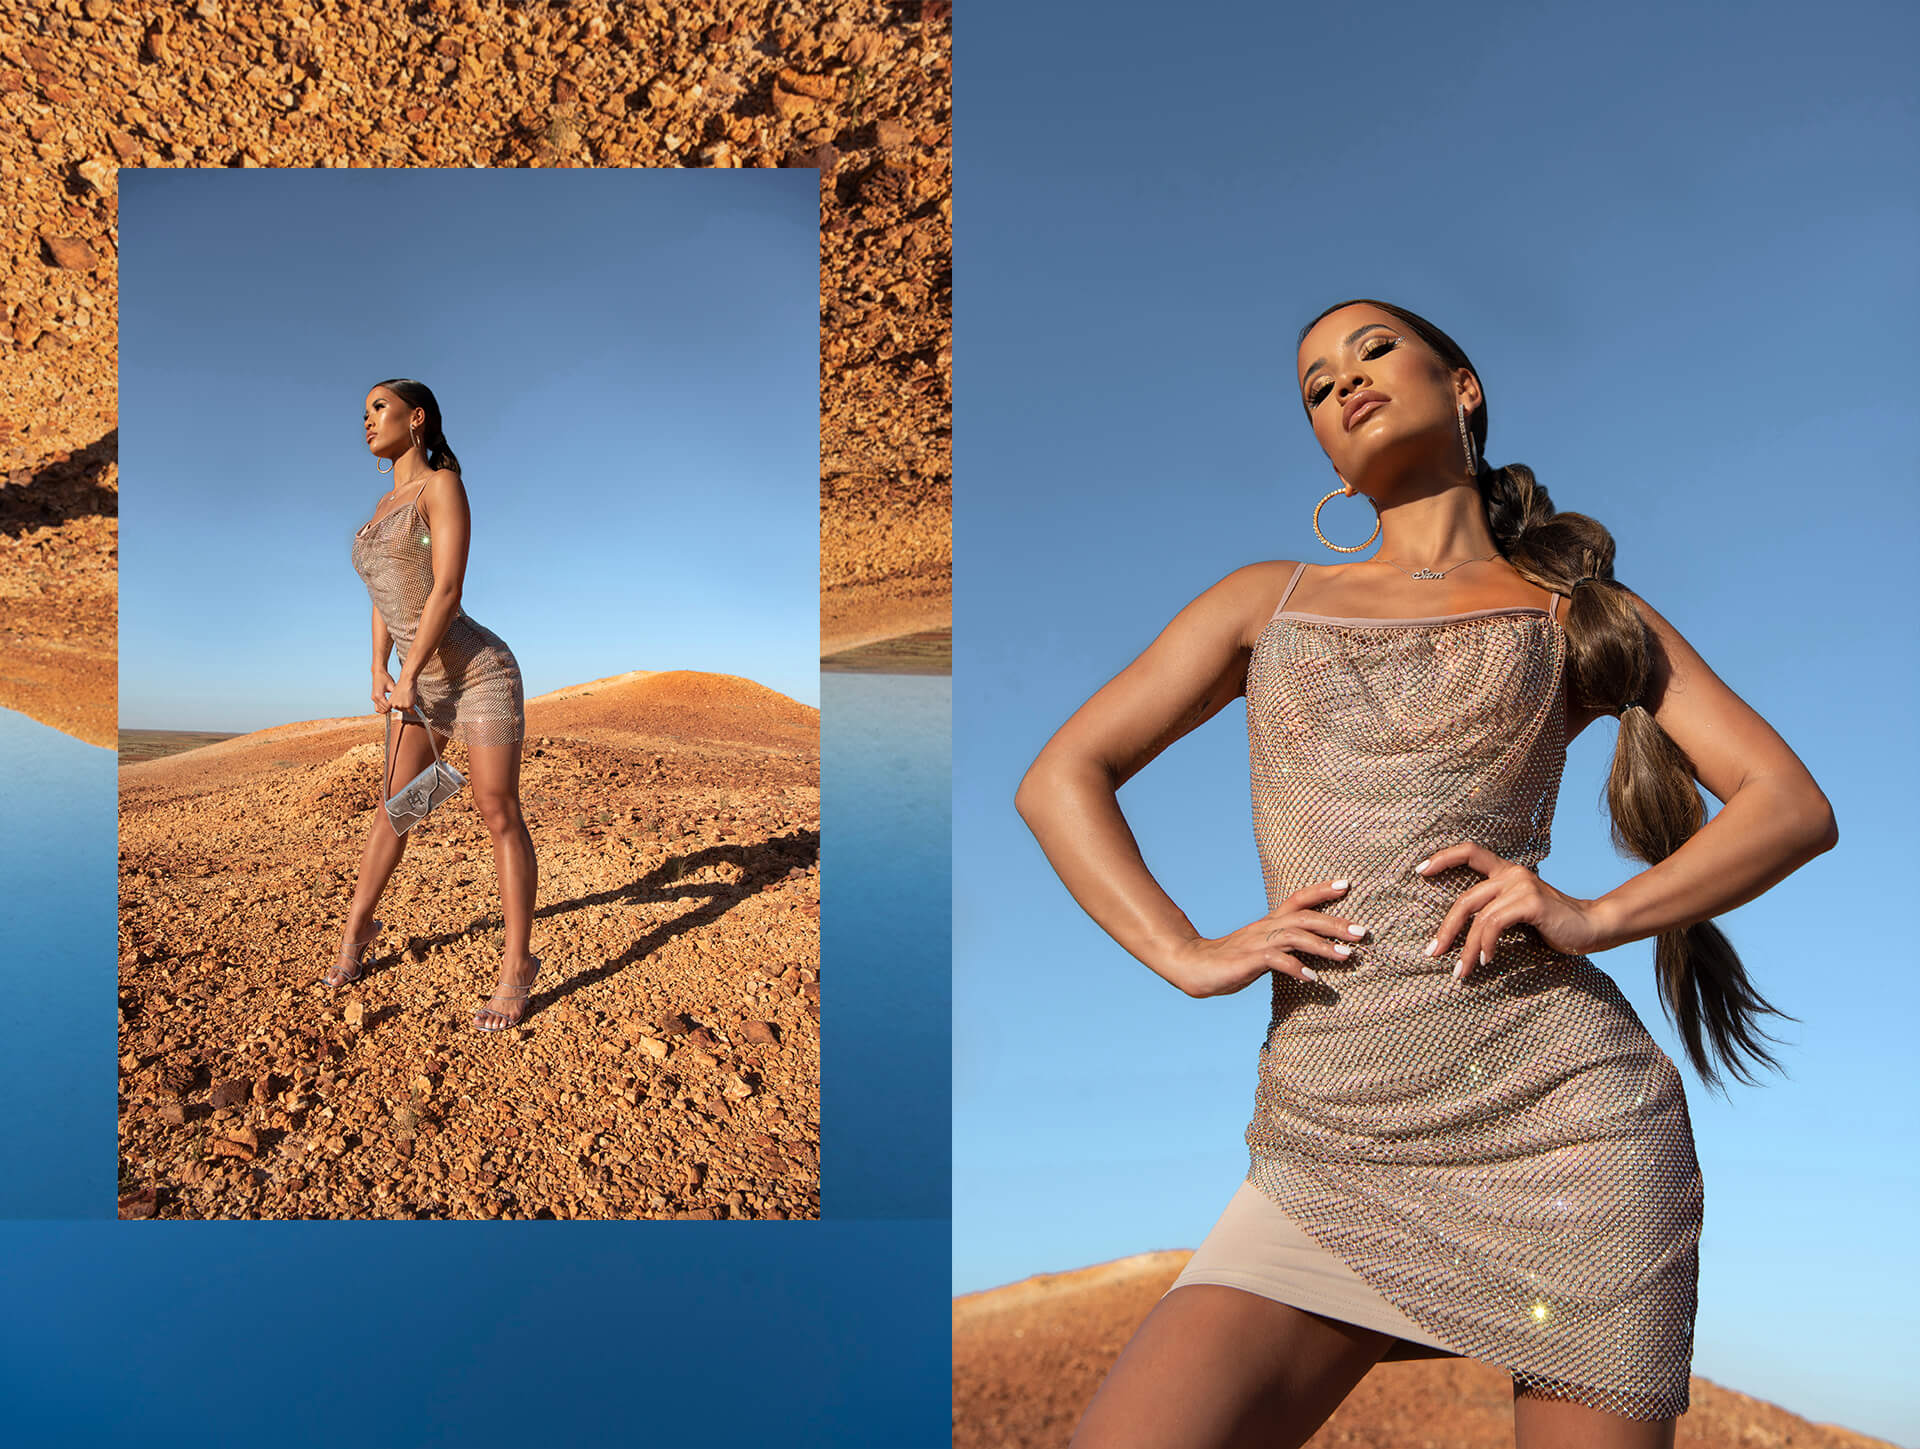 Desert Dreams Lookbook Image 15 Desktop